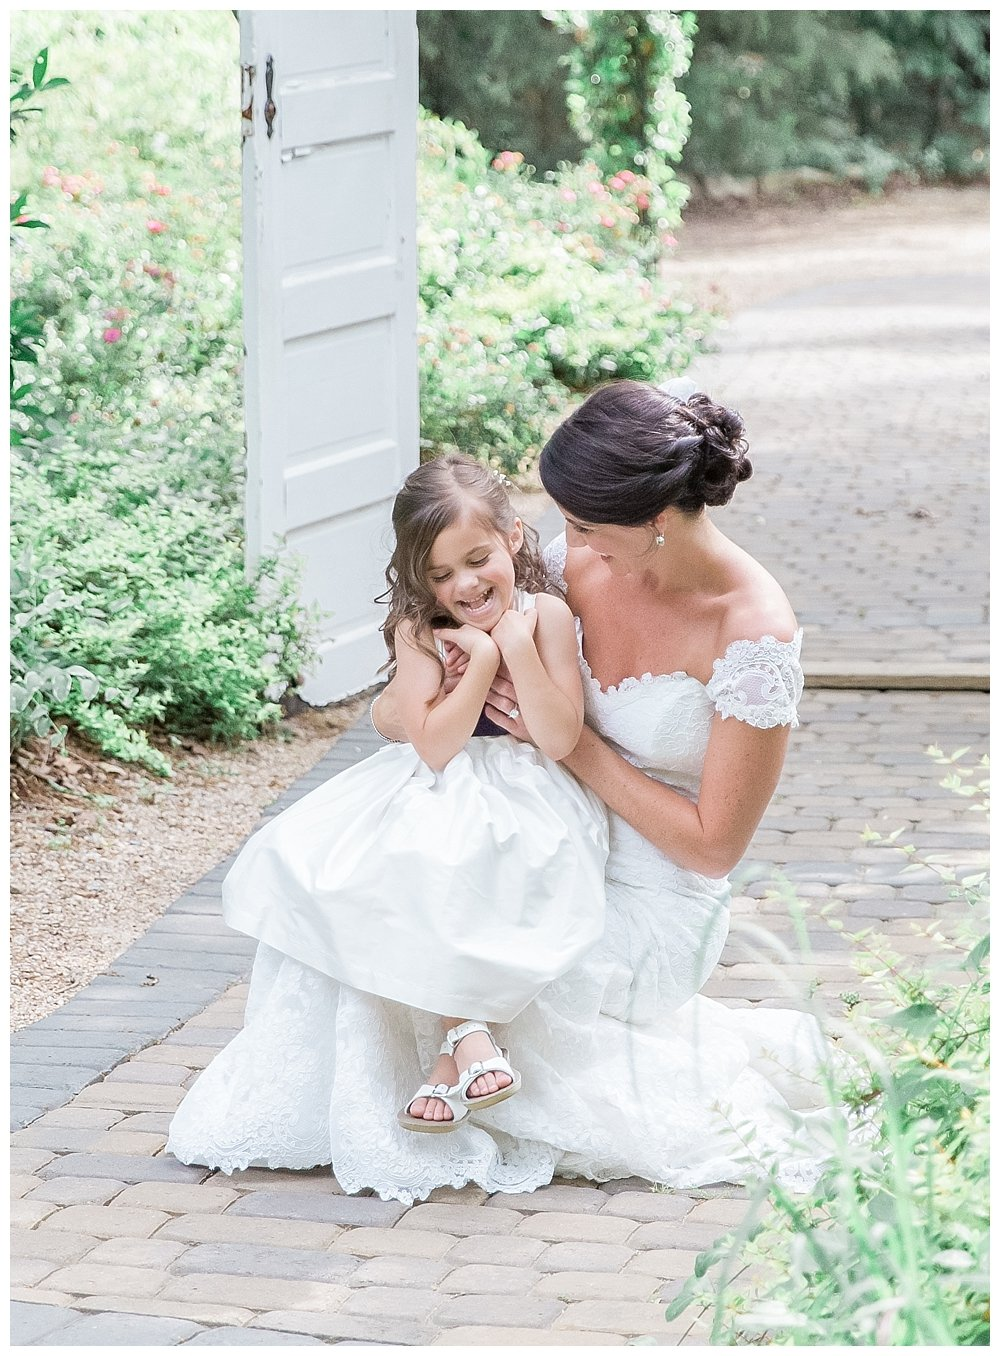 Wedding Photographer in Charlotte, NC Leah Marie Photography + Stationery